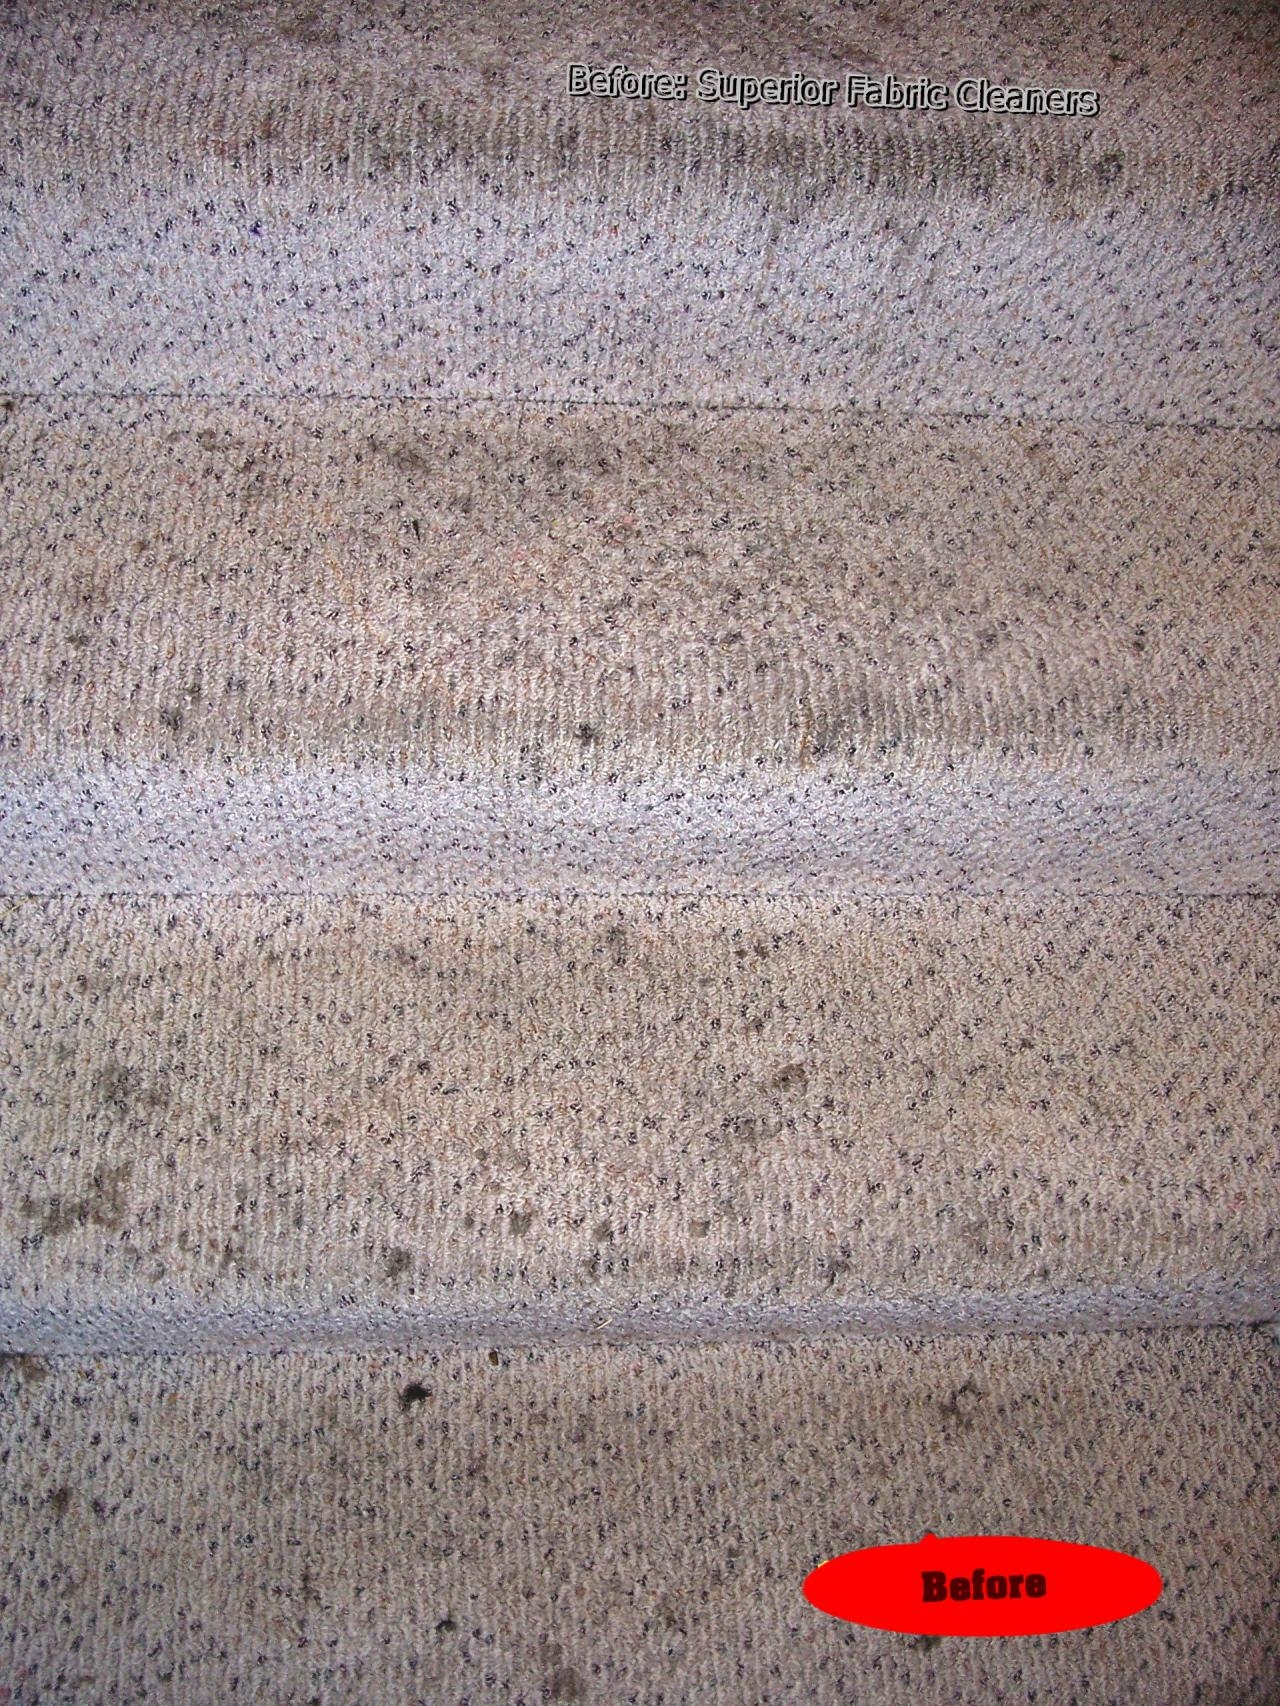 Superior Fabric Cleaners Carpet Cleaning Before After Pictures | Berber Carpet For Stairs | Best Quality | Contemporary | Decorative | Textured | Marine Backing